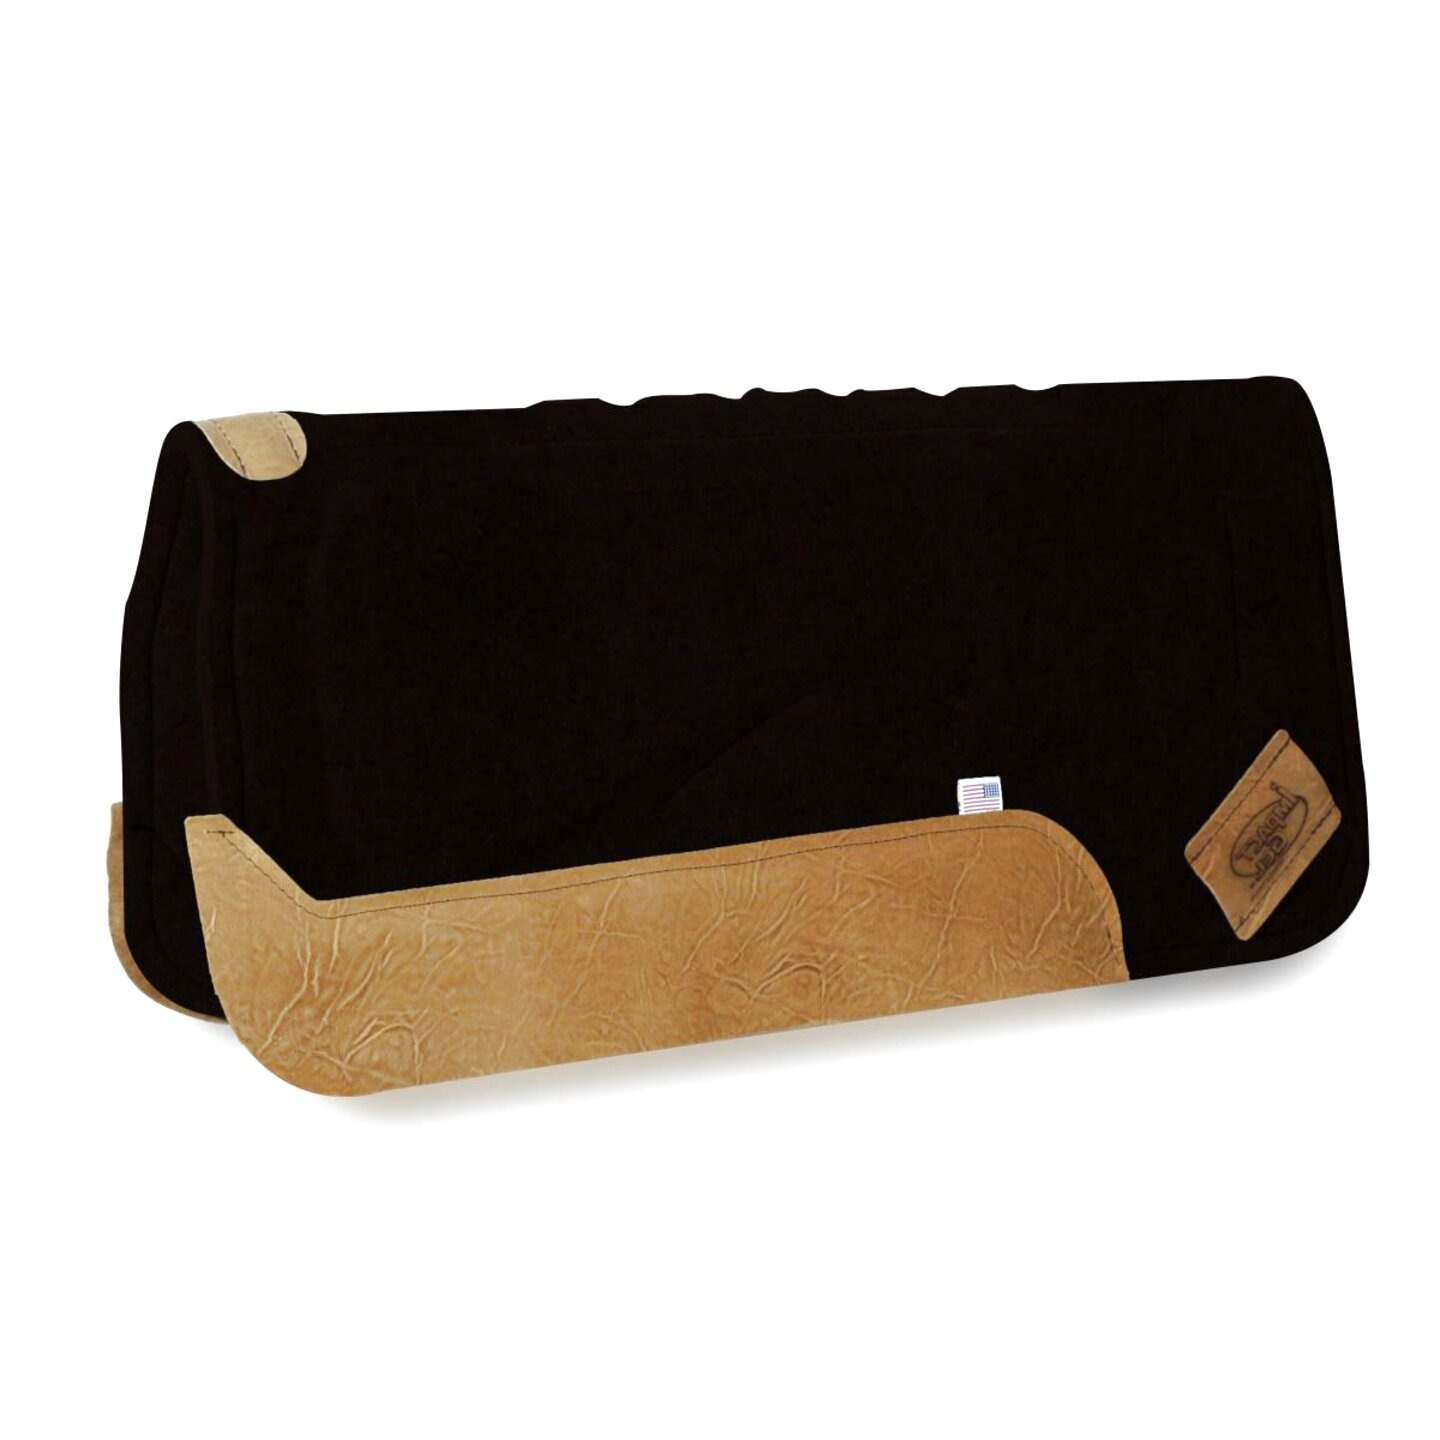 impact gel saddle pad for sale